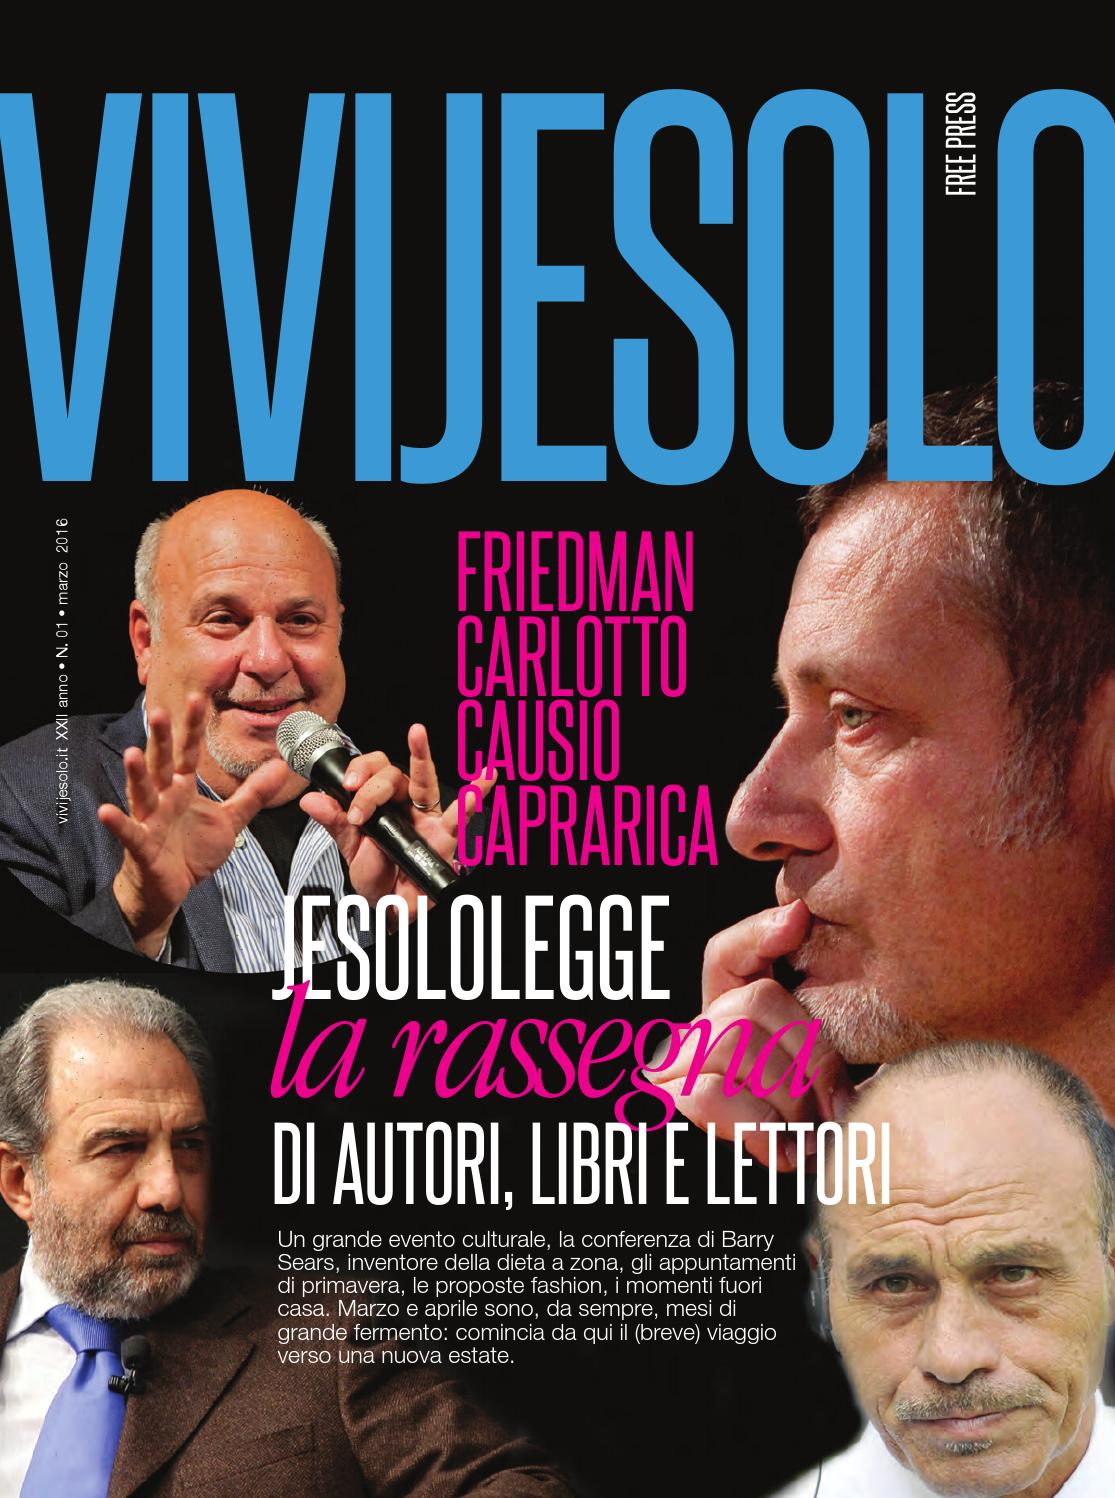 vivijesolo n 1 23 marzo 2016 by next italia issuu